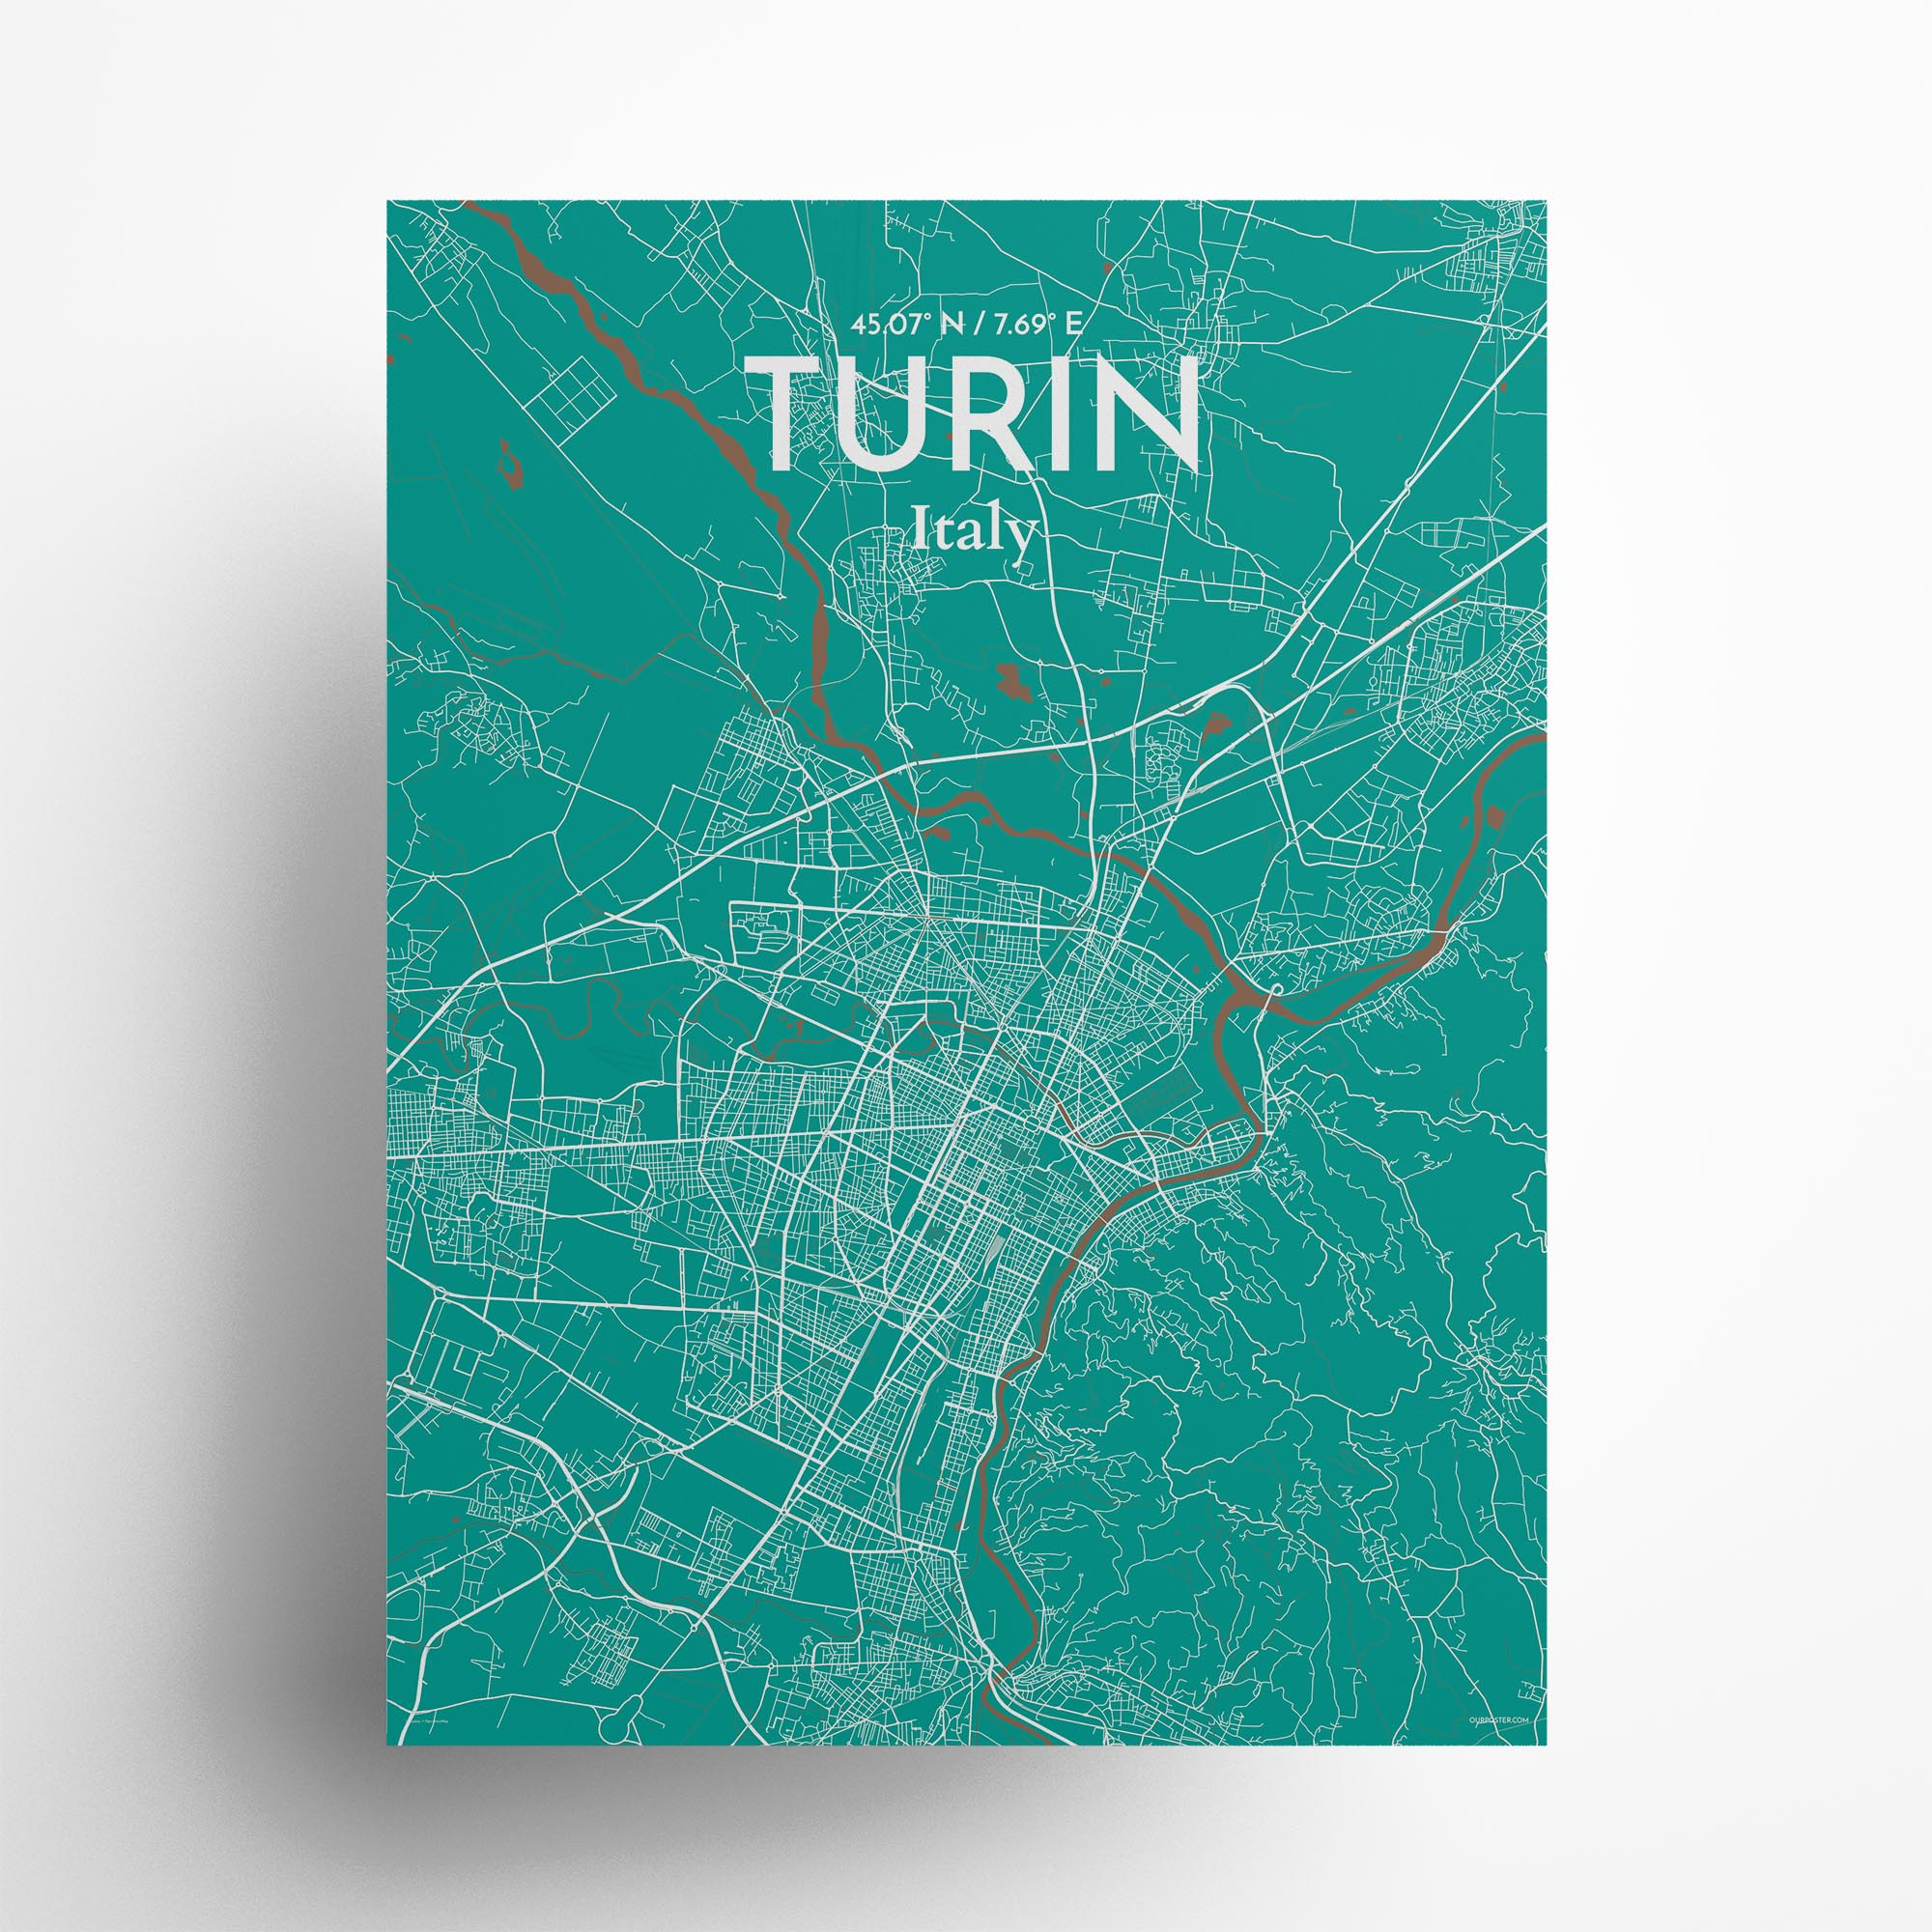 "Turin city map poster in Nature of size 18"" x 24"""